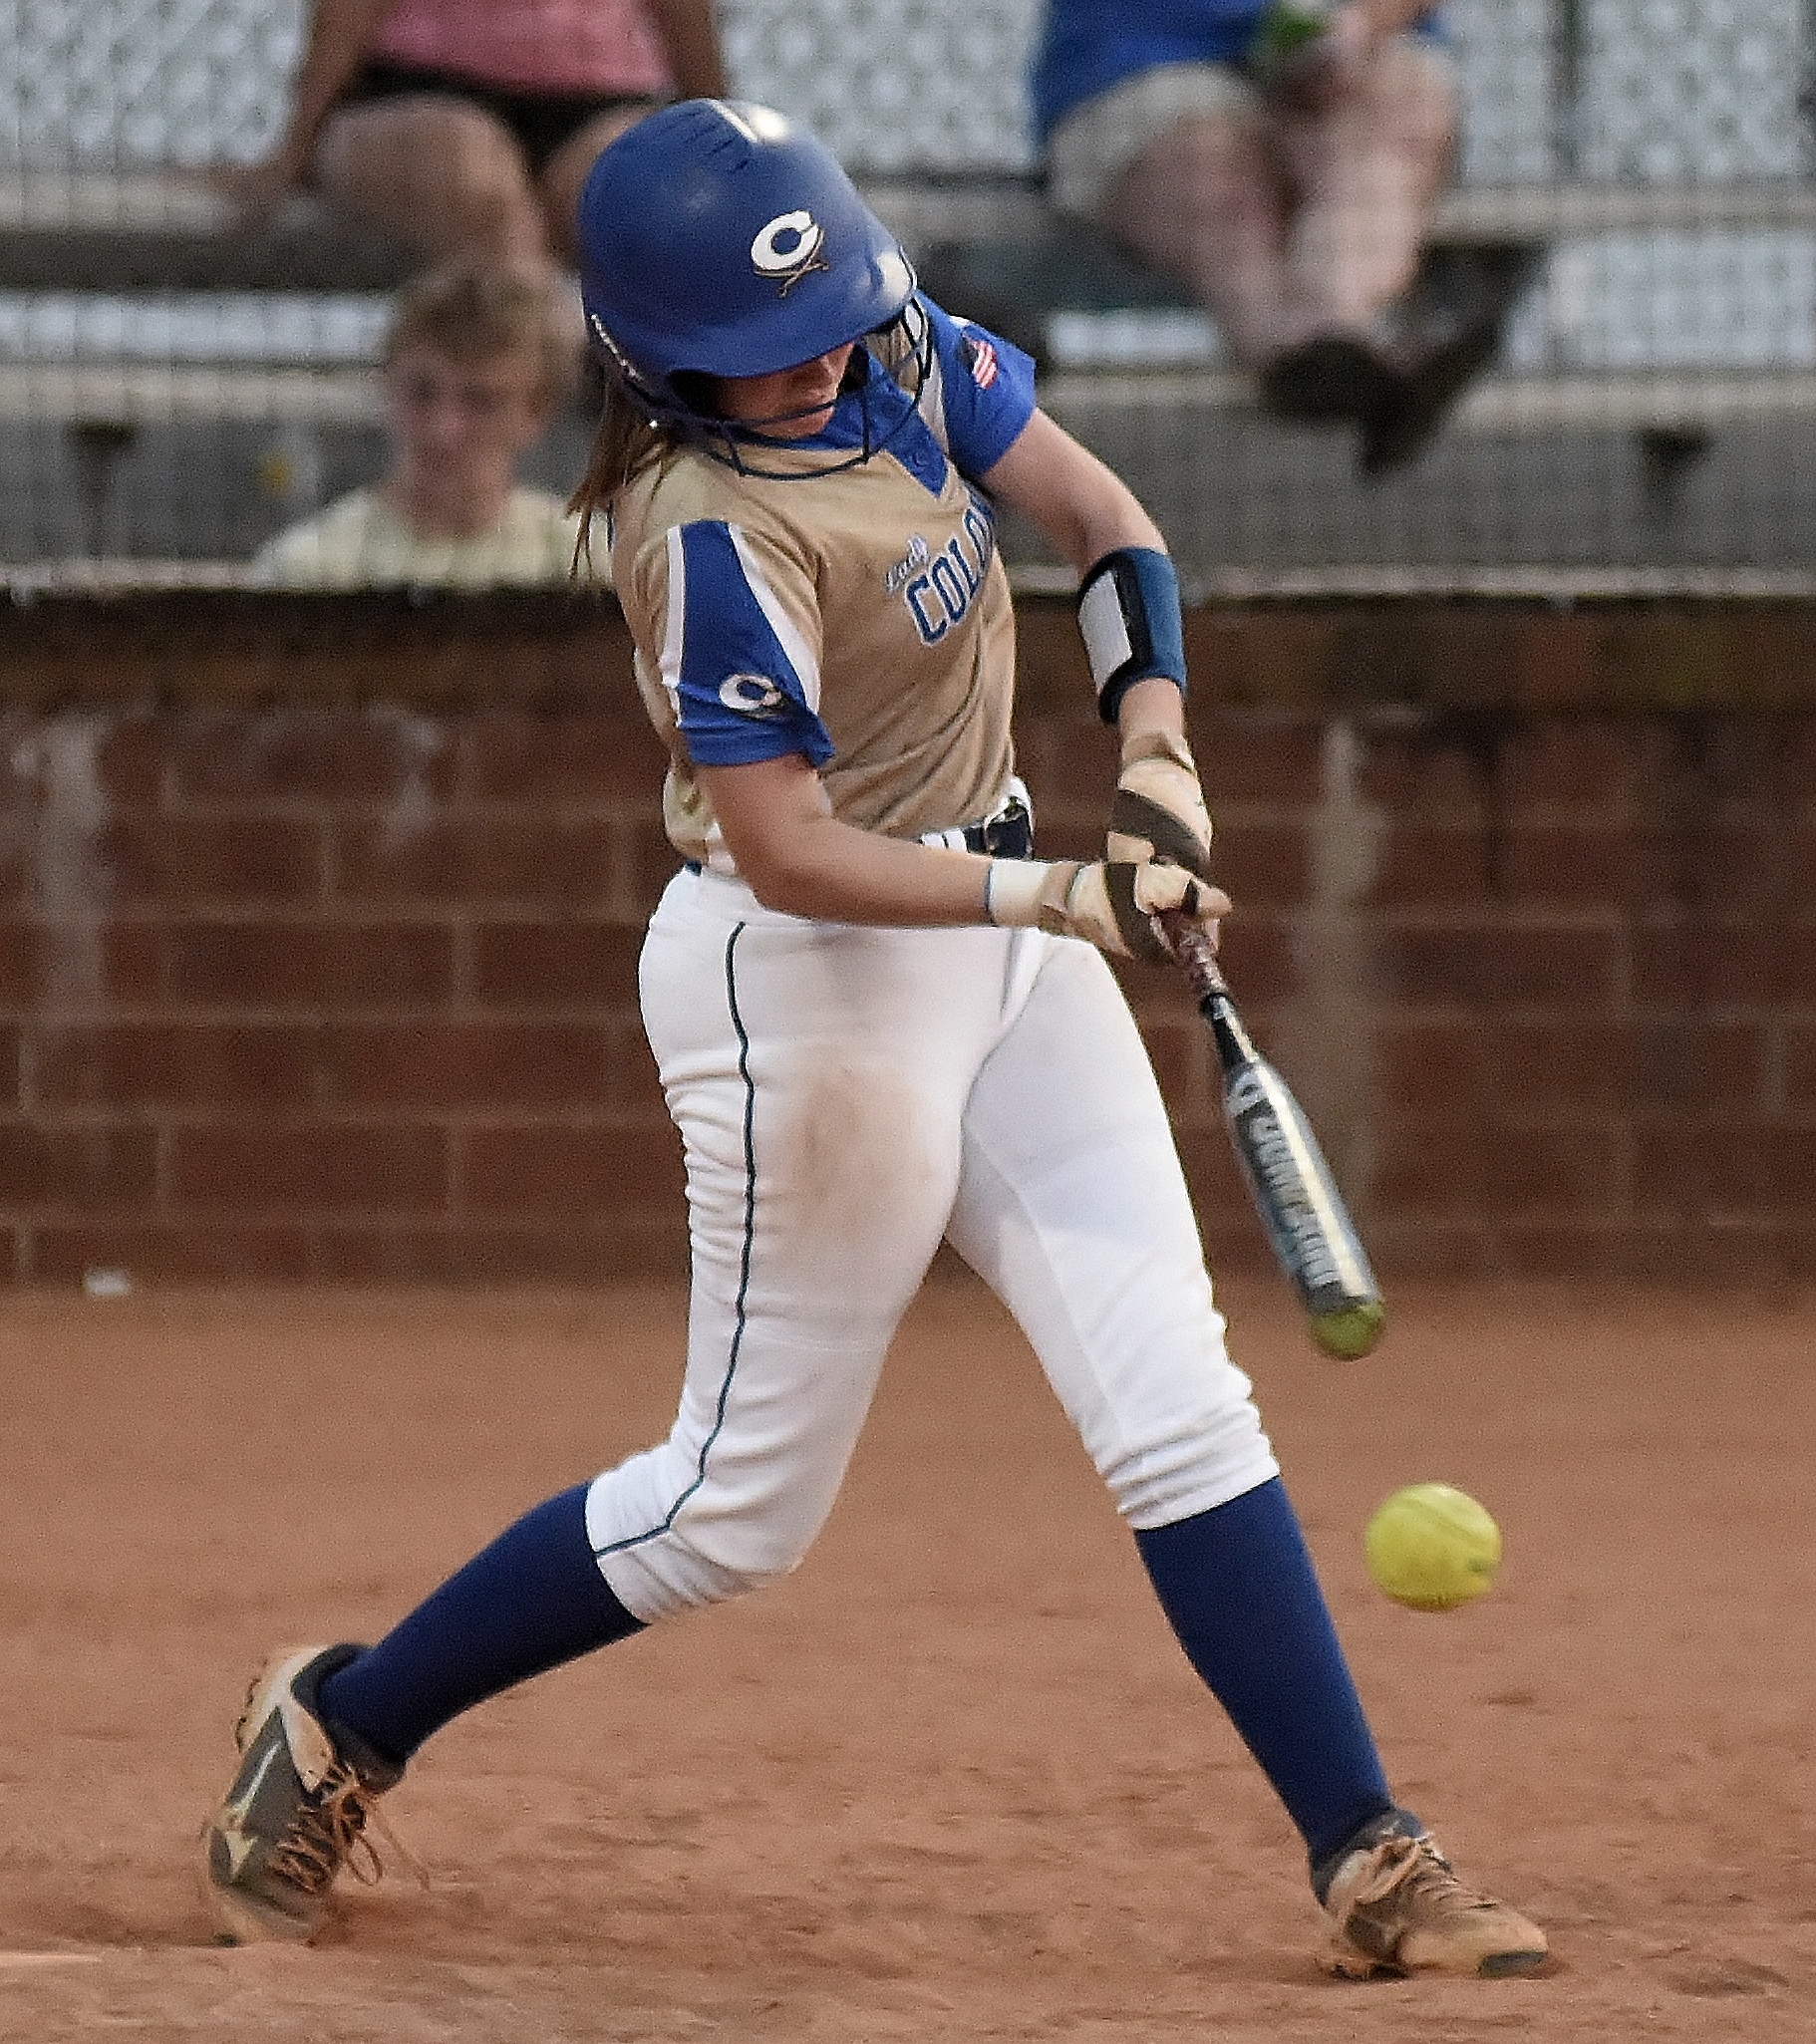 Cass sophomore Haley Smith delivers a base hit Tuesday against Hiram.